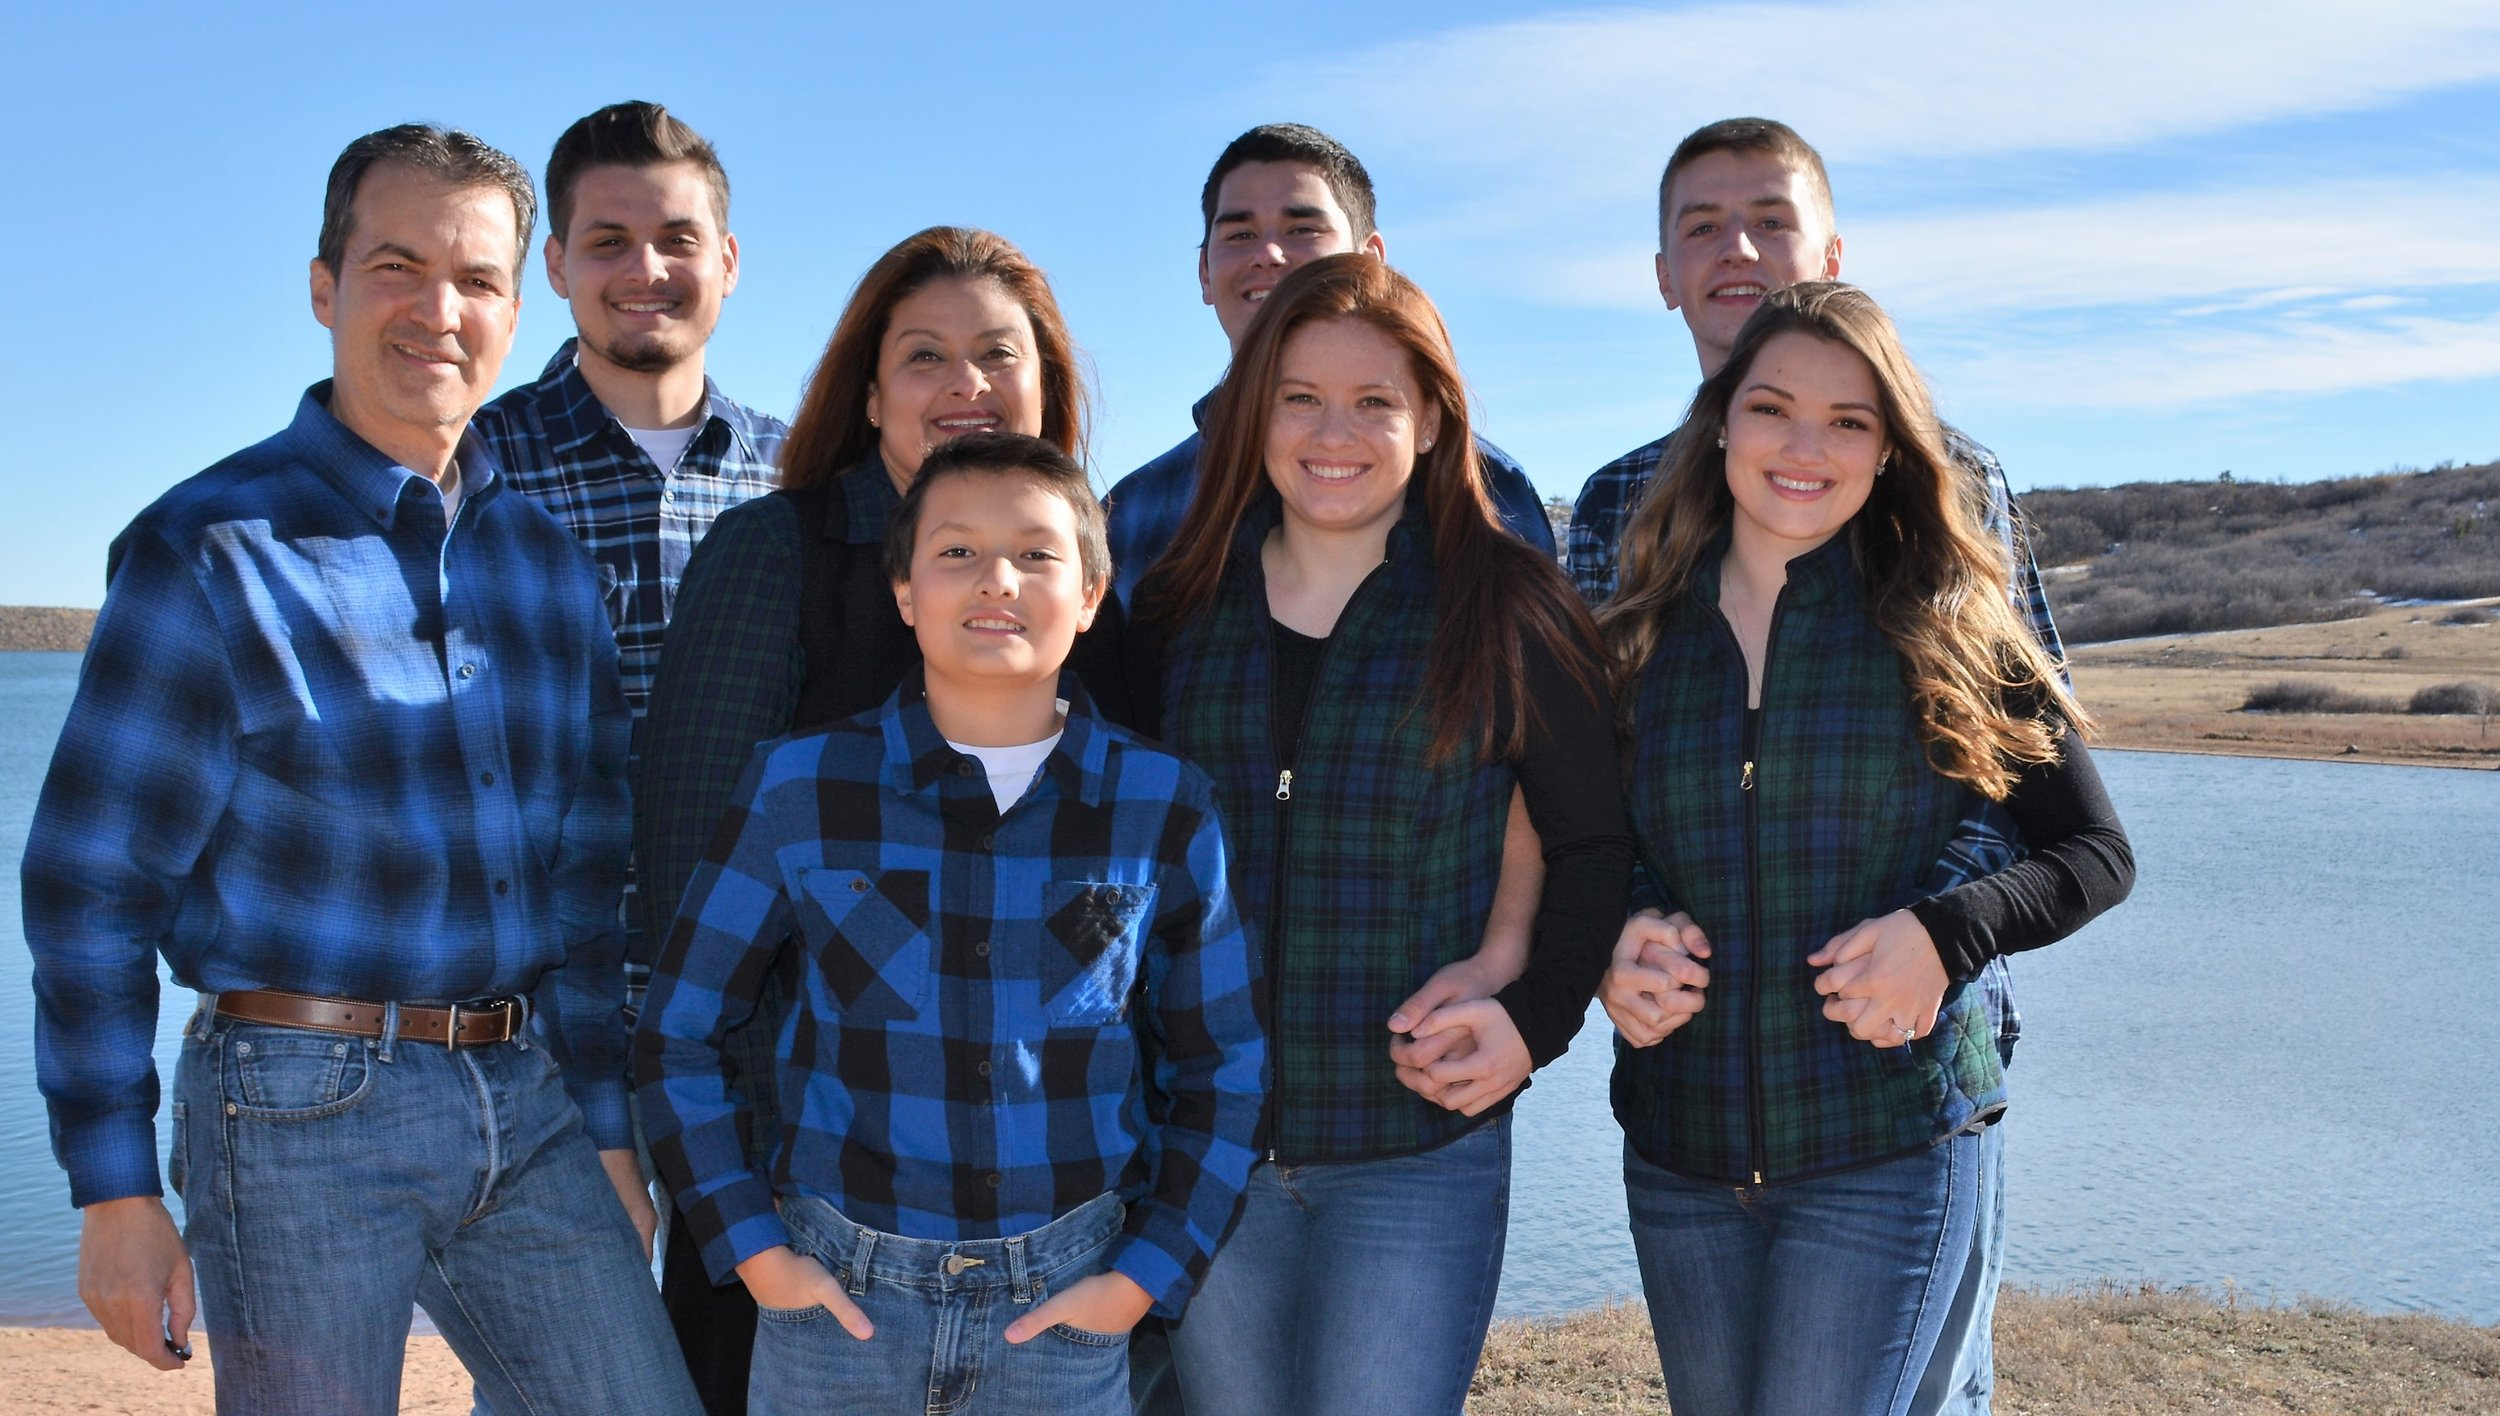 The Arcarese Family